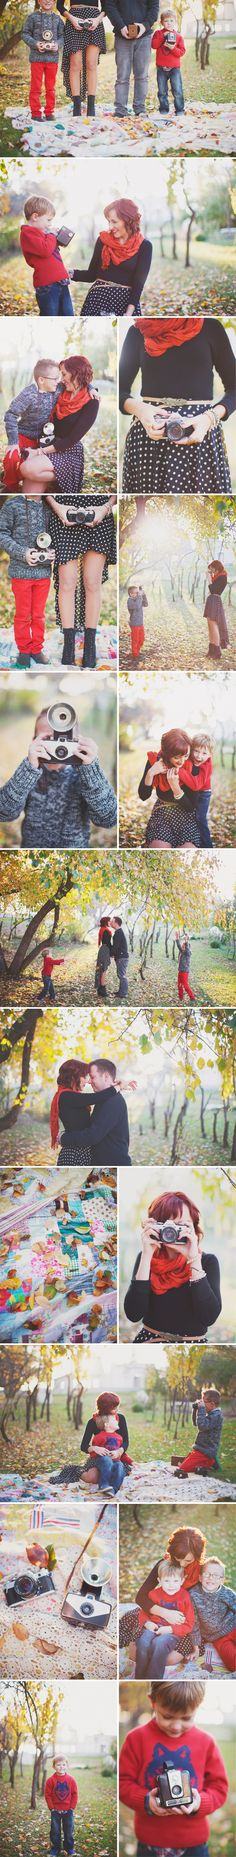 The Baldwin family » simply rosie photography